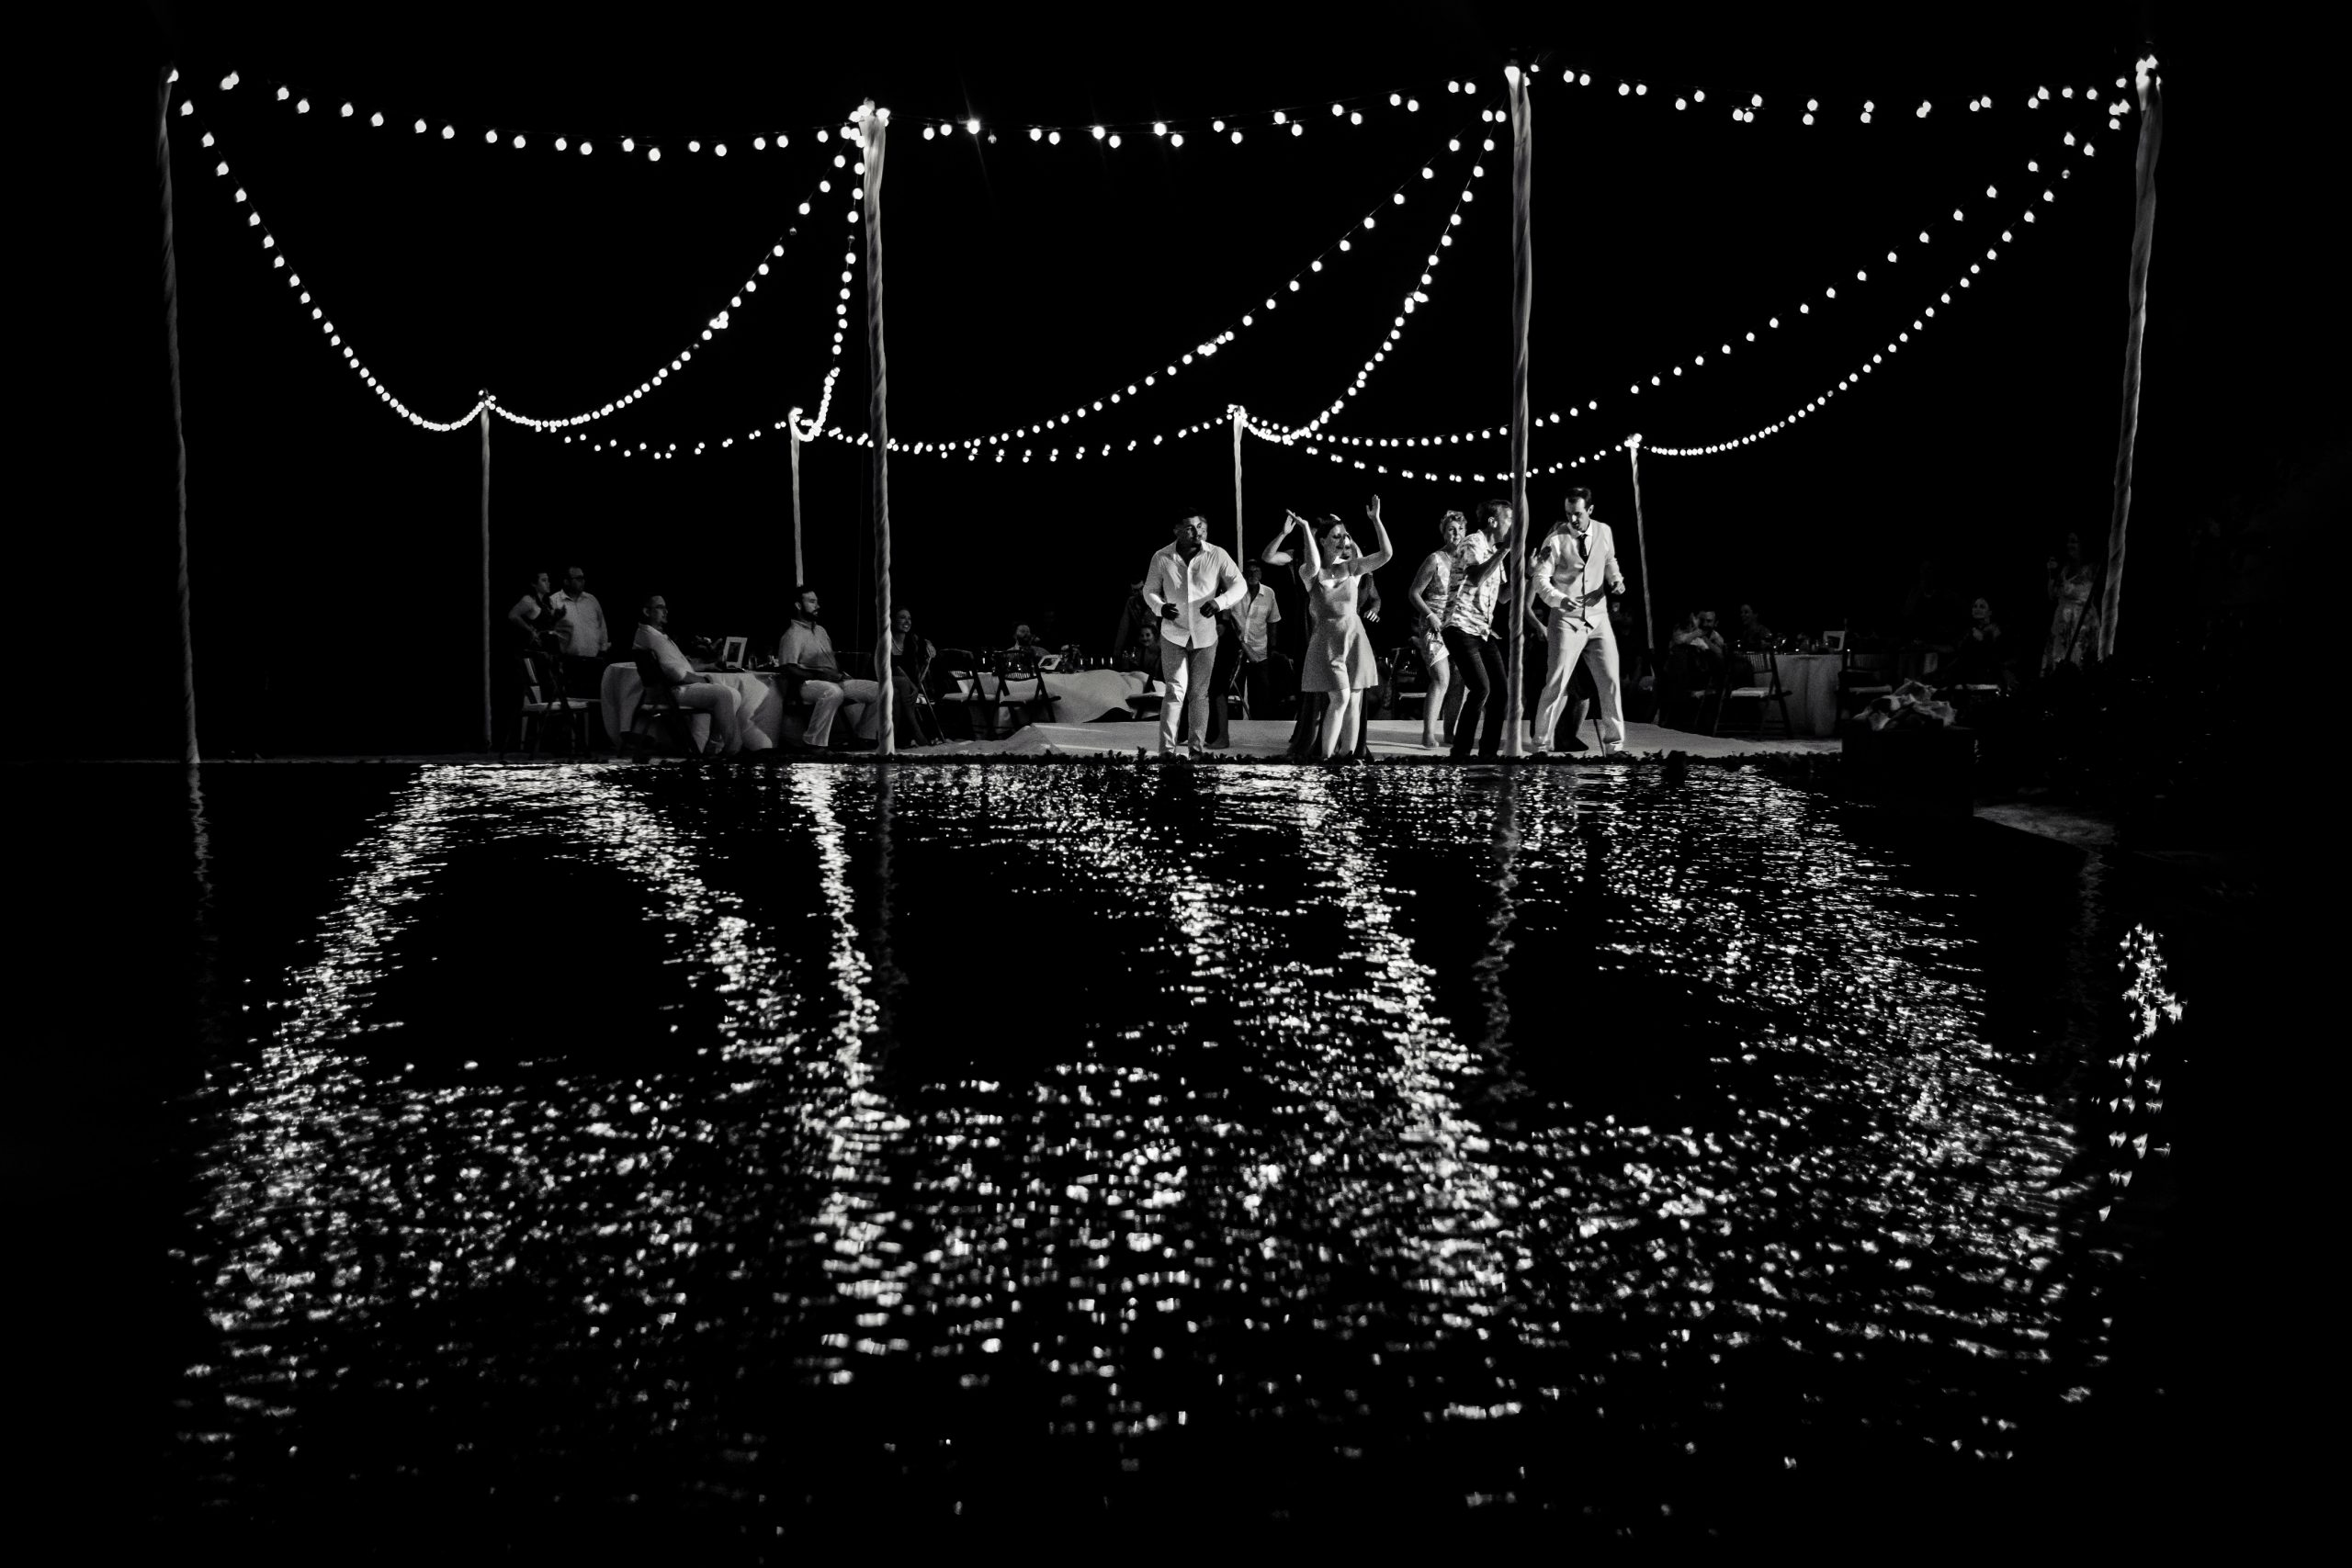 Wedding guests hit the dance floor amidst sparkling lights and reflections in water